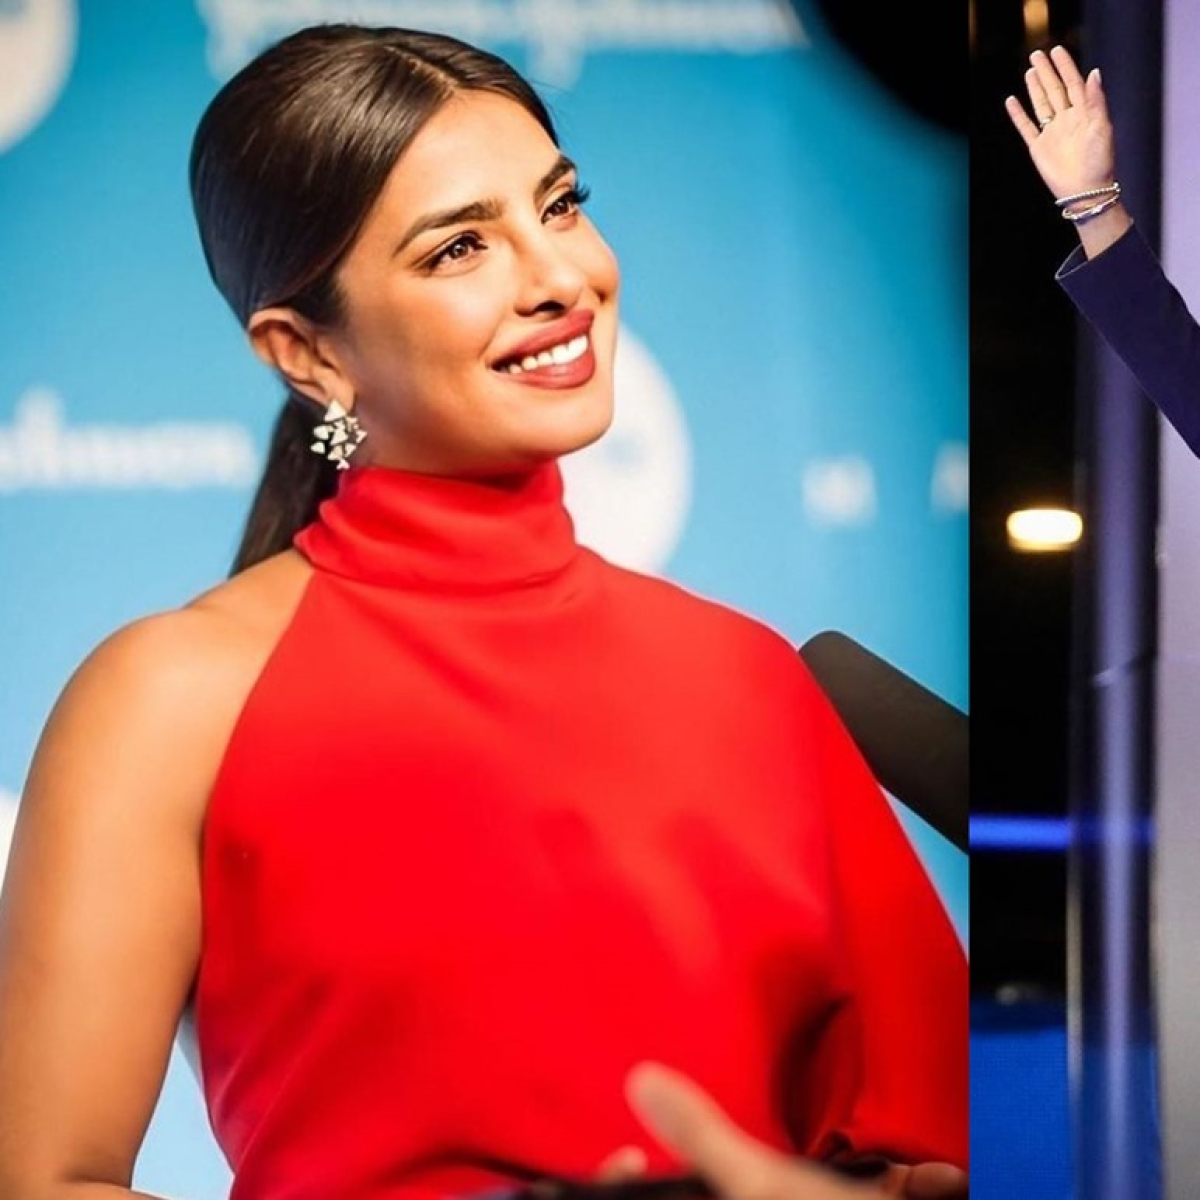 Priyanka Chopra lauds Kamala Harris to become the first person of Indian descent as US vice president nominee